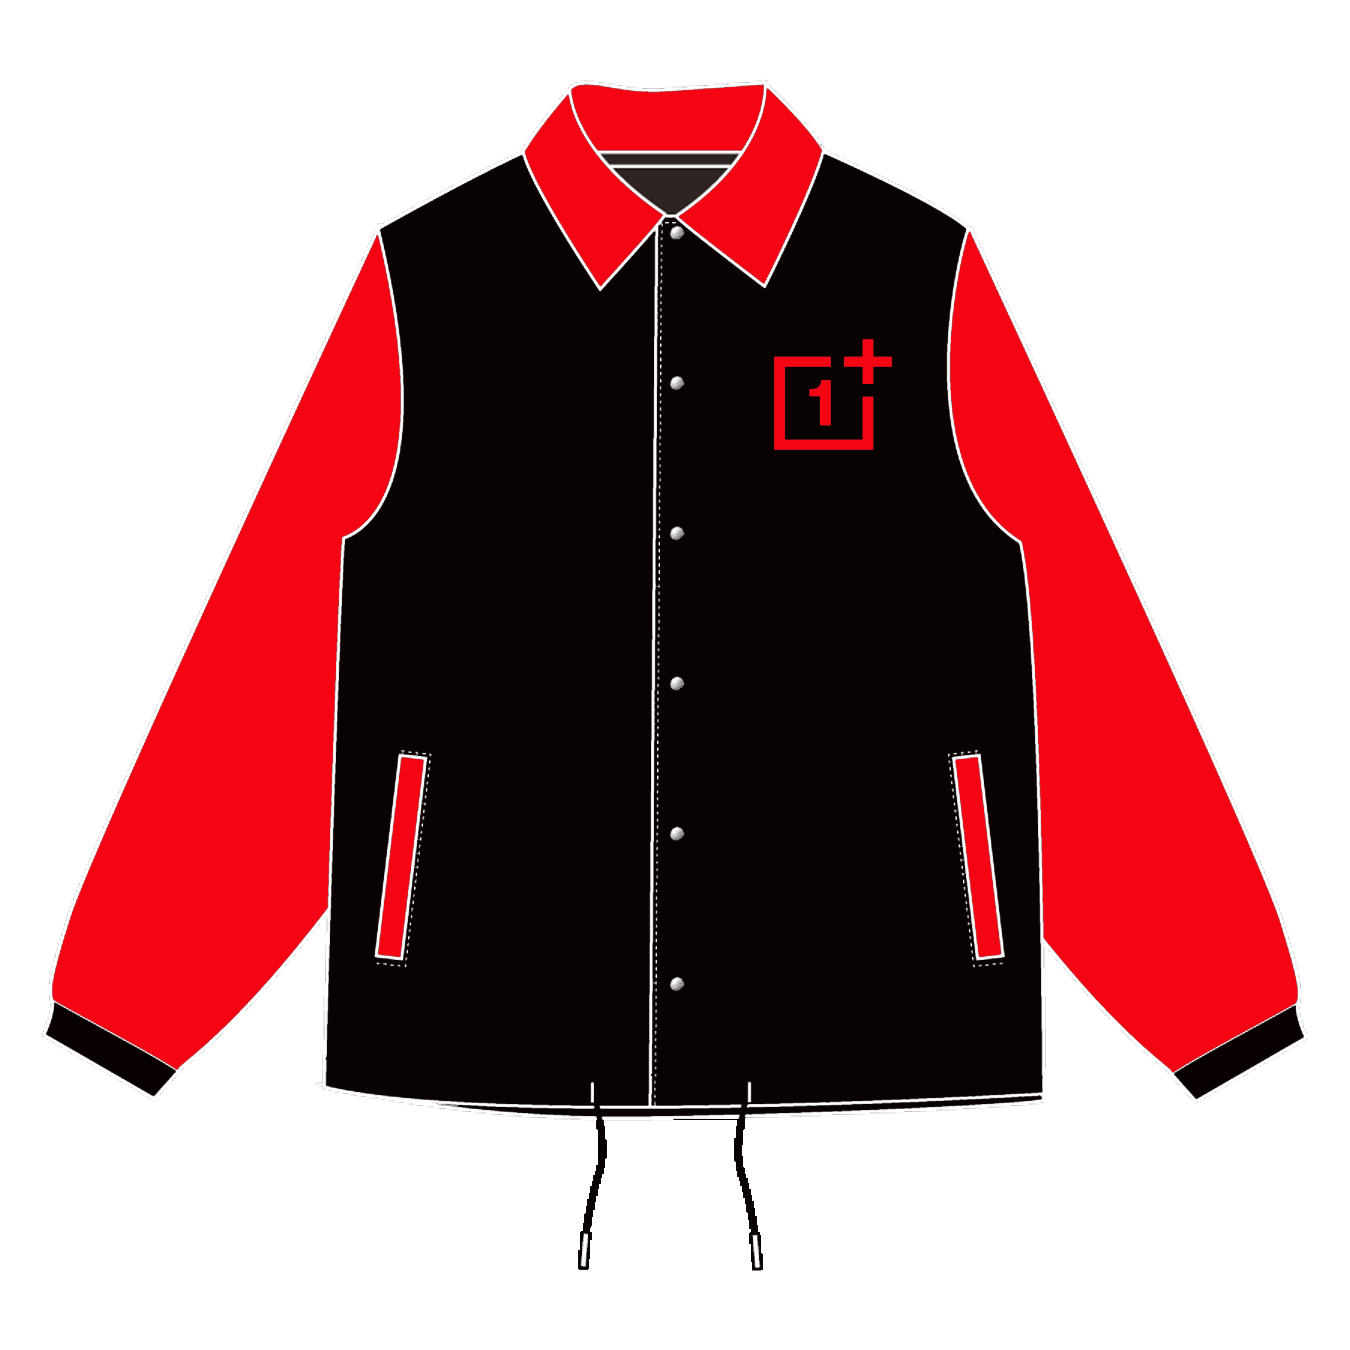 OnePlus-jacket-tp-front-min.png